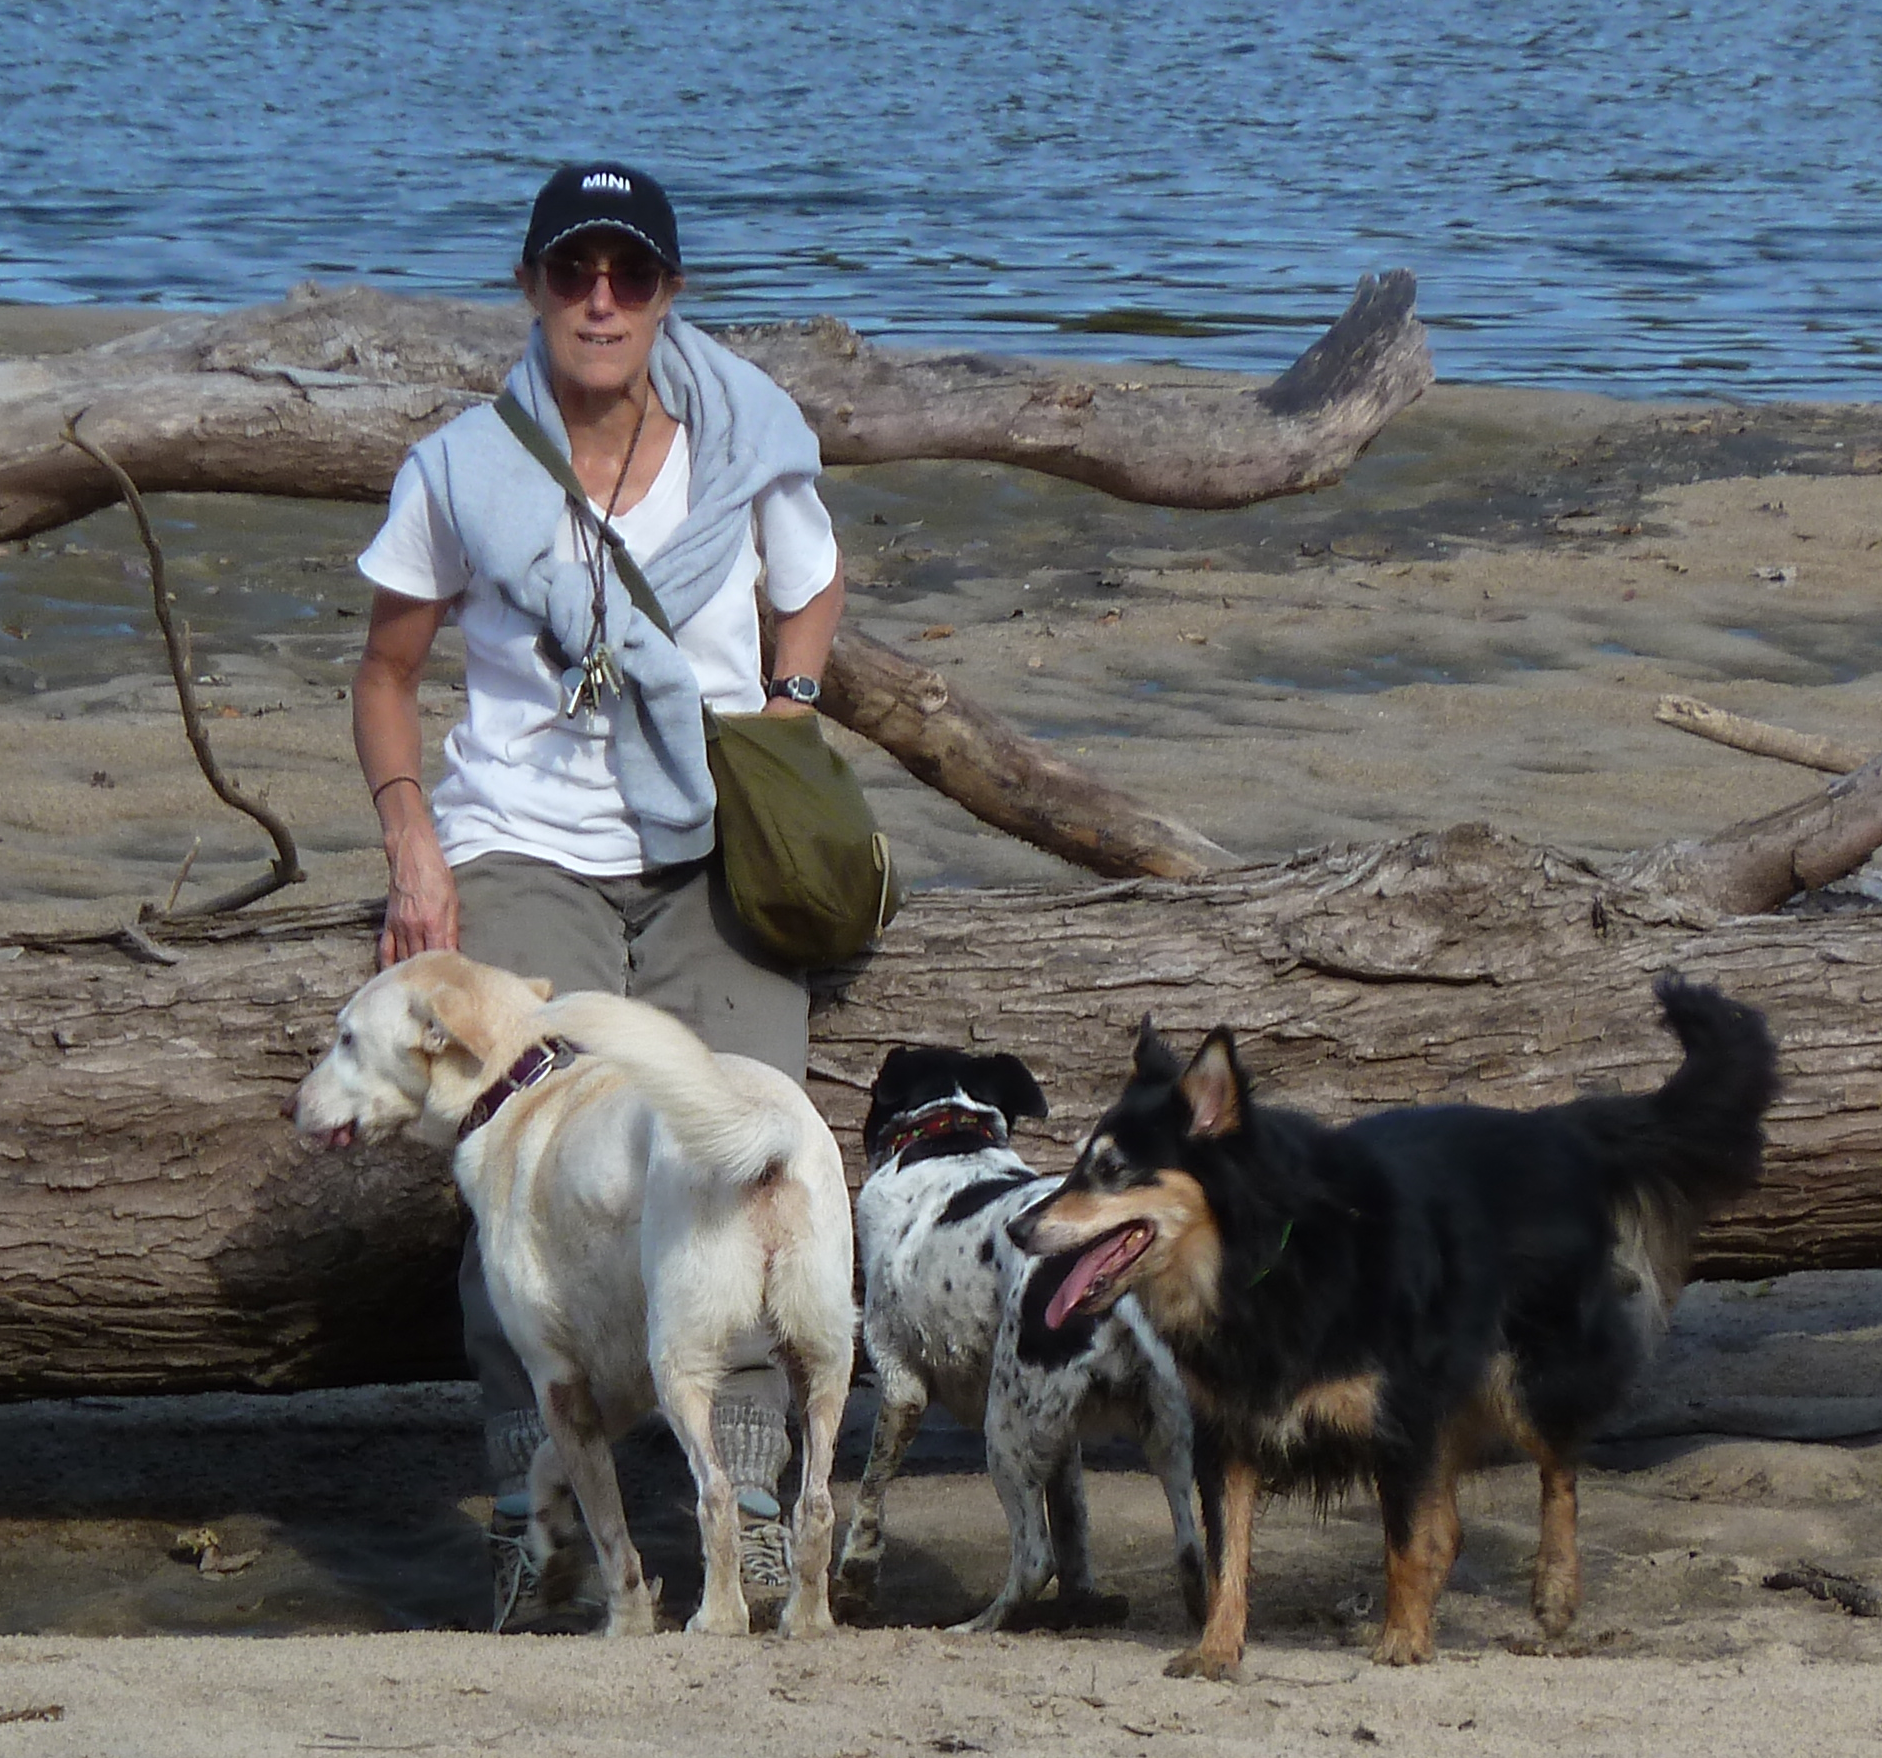 MC and dogs cropped